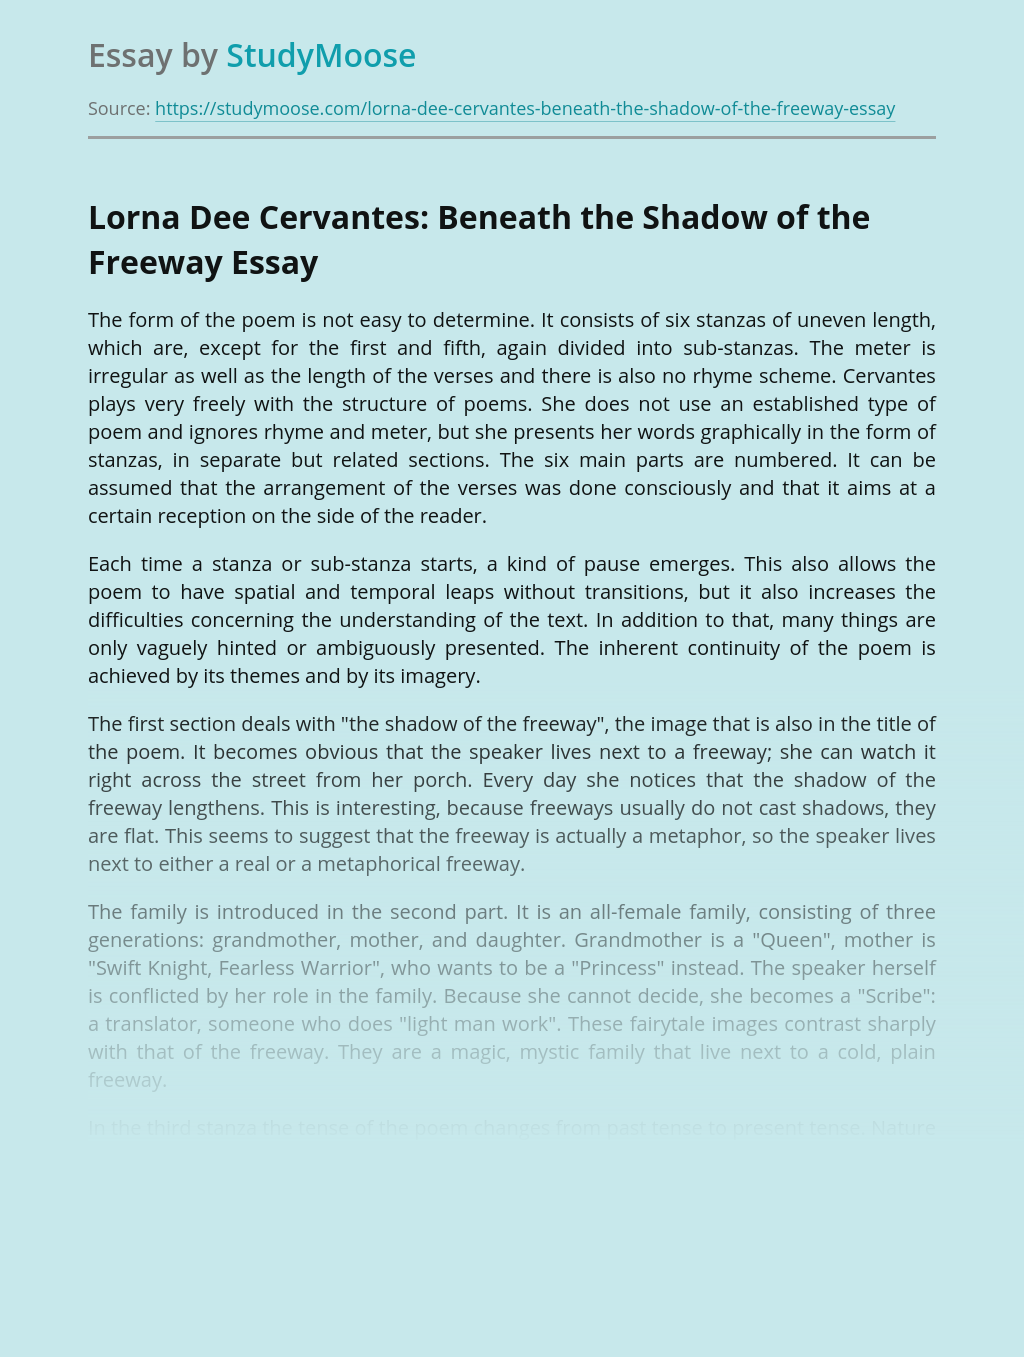 Lorna Dee Cervantes: Beneath the Shadow of the Freeway